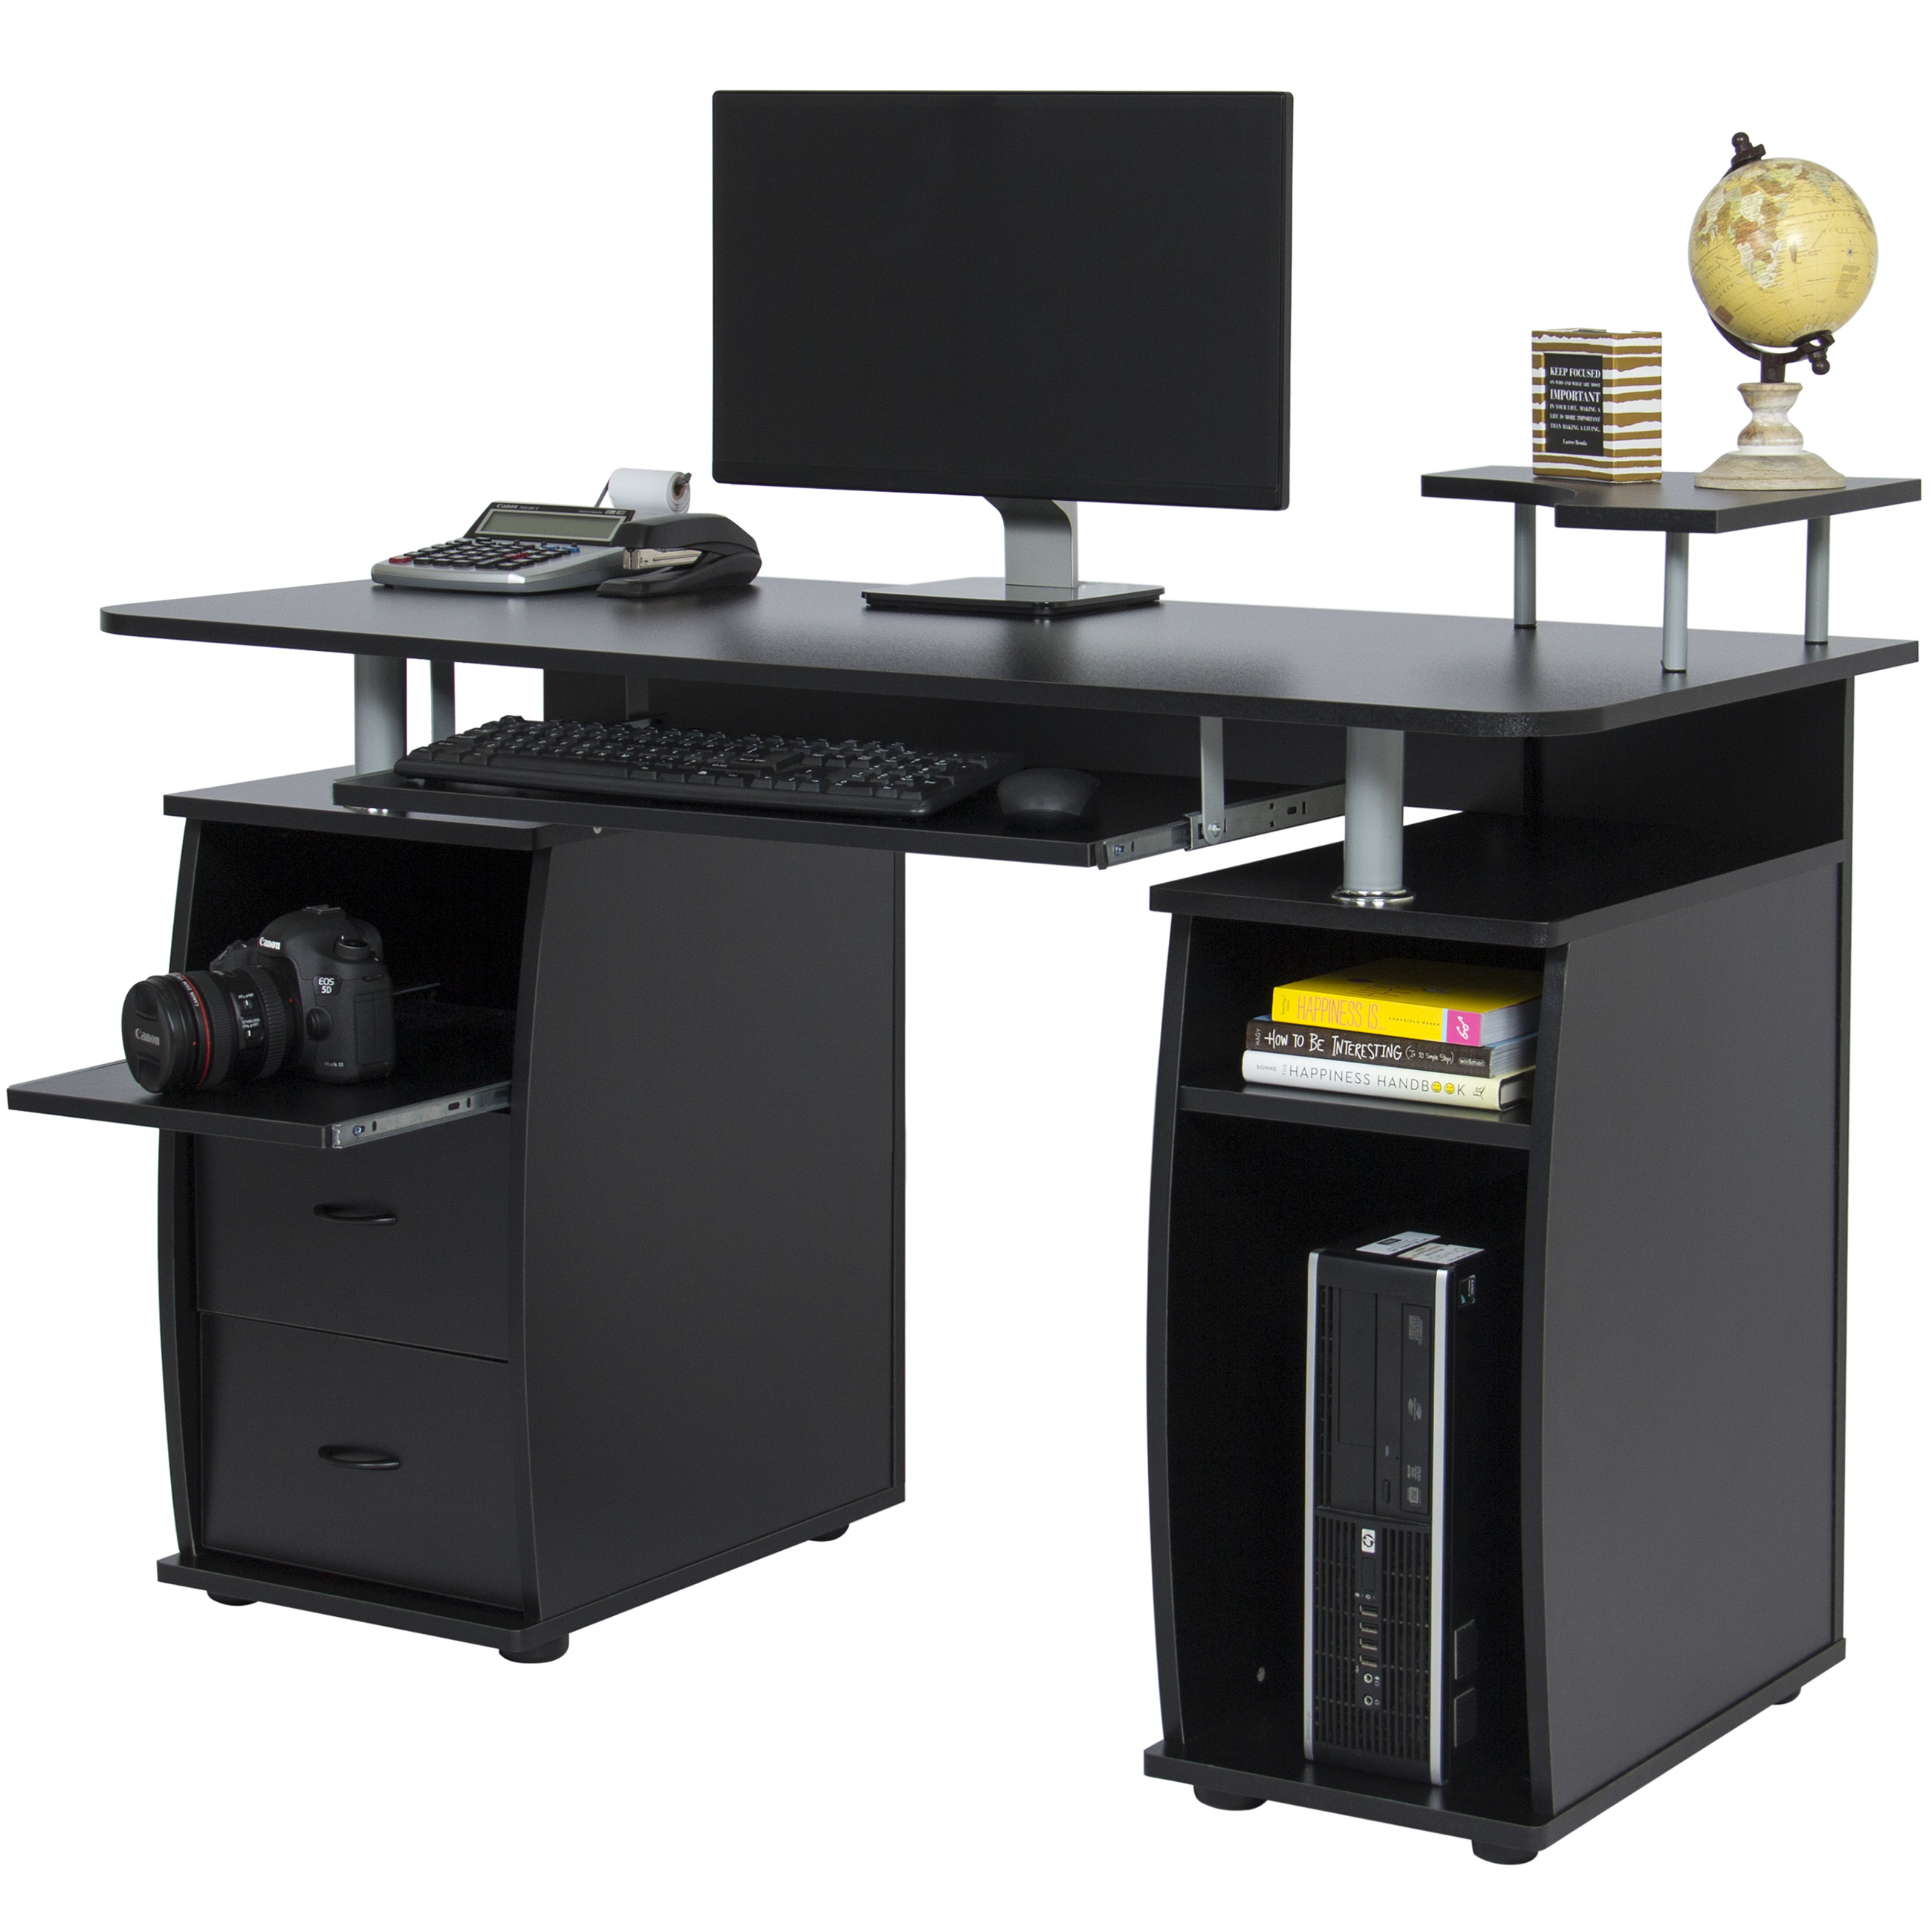 Best Choice Products Work Station Computer Desk Home Office W/ Monitor, Tower, Printer Shelf